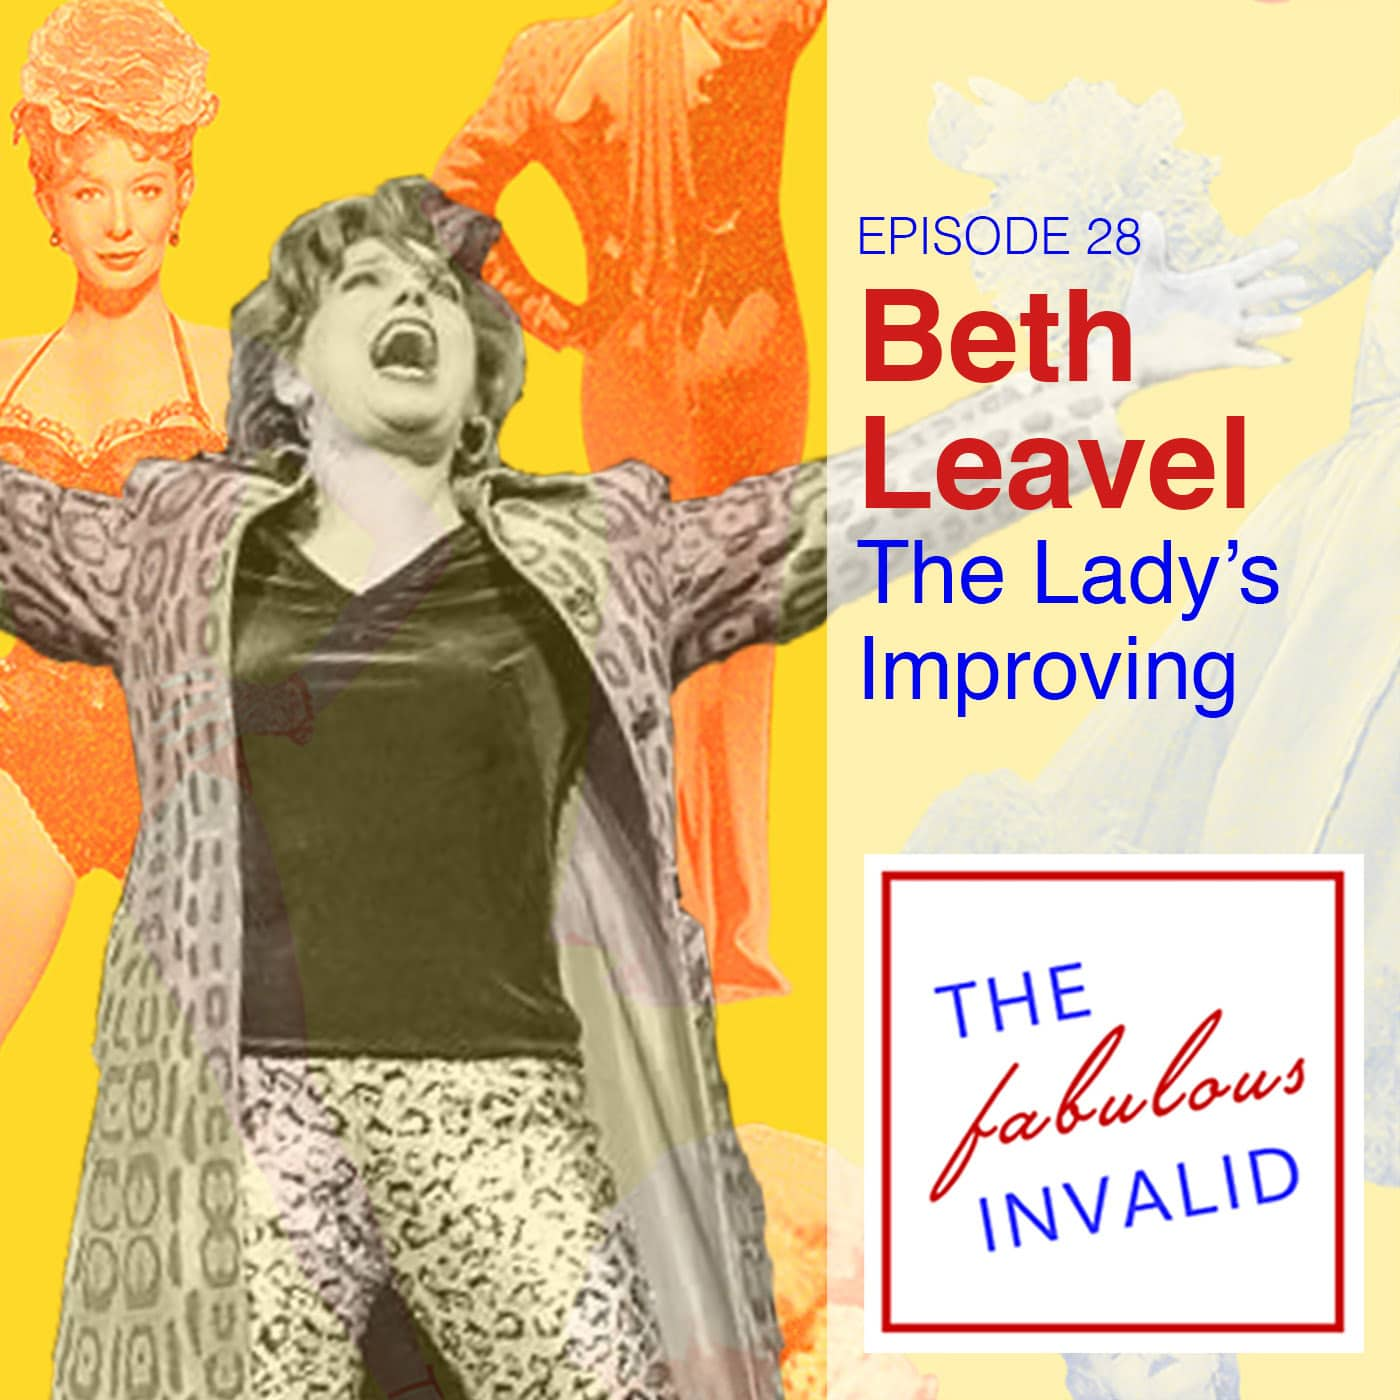 The Fabulous Invalid Ep 28 Beth Leaval